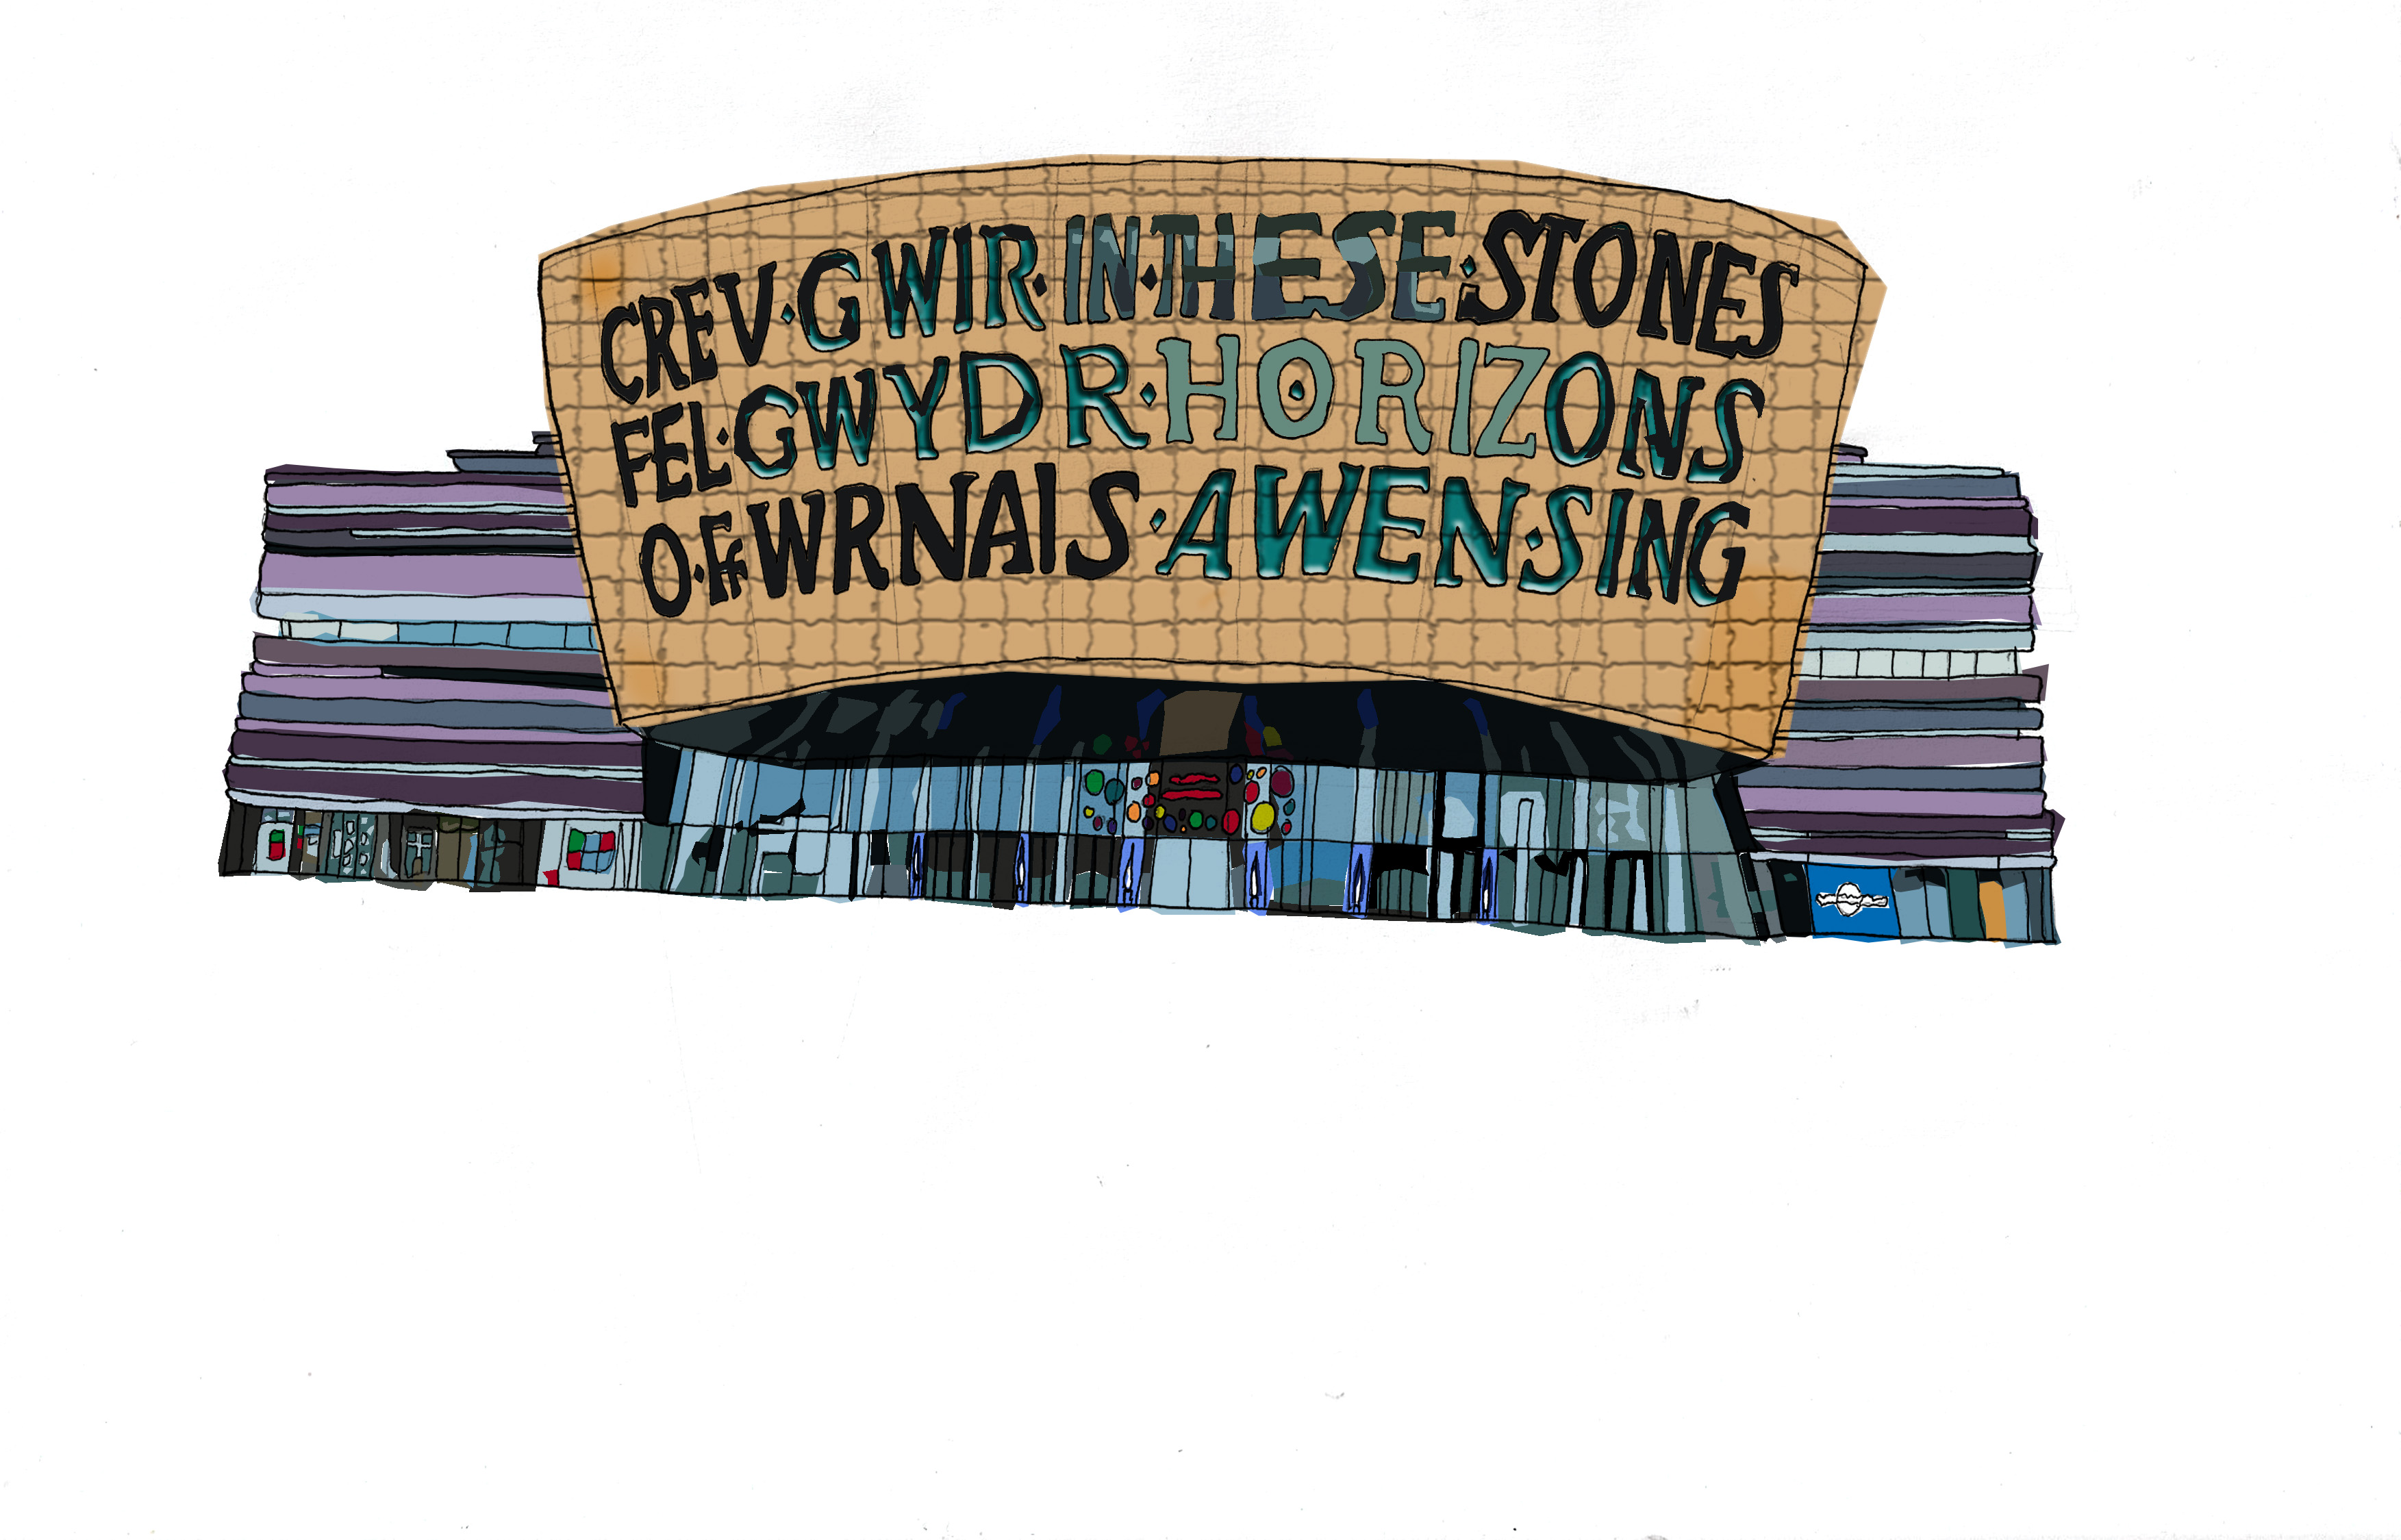 NEWS: Illustrated Map of Cardiff Venues Launched